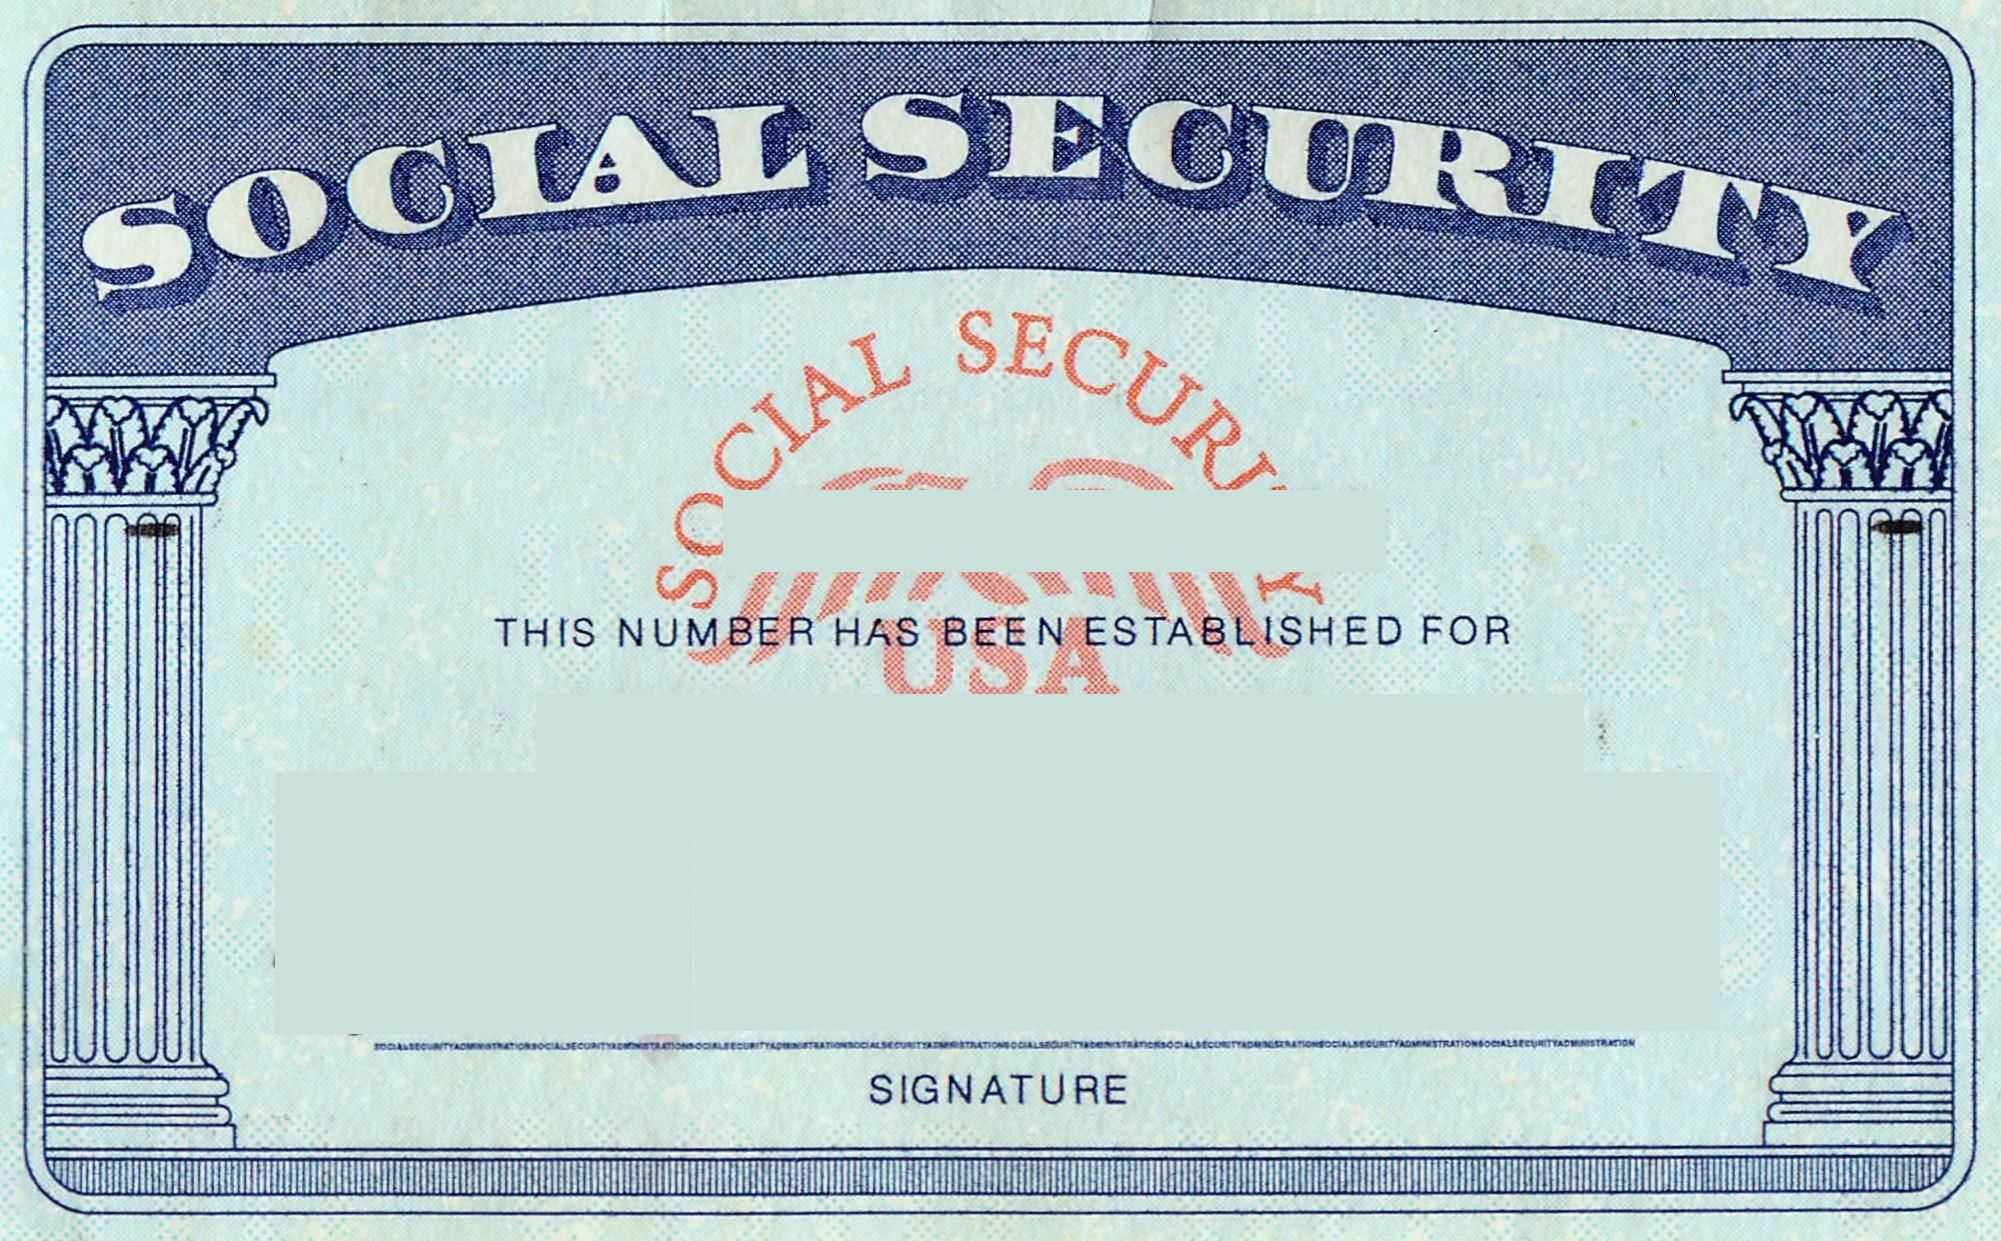 Blank Social Security Card Template | Social Security Card In Blank Social Security Card Template Download